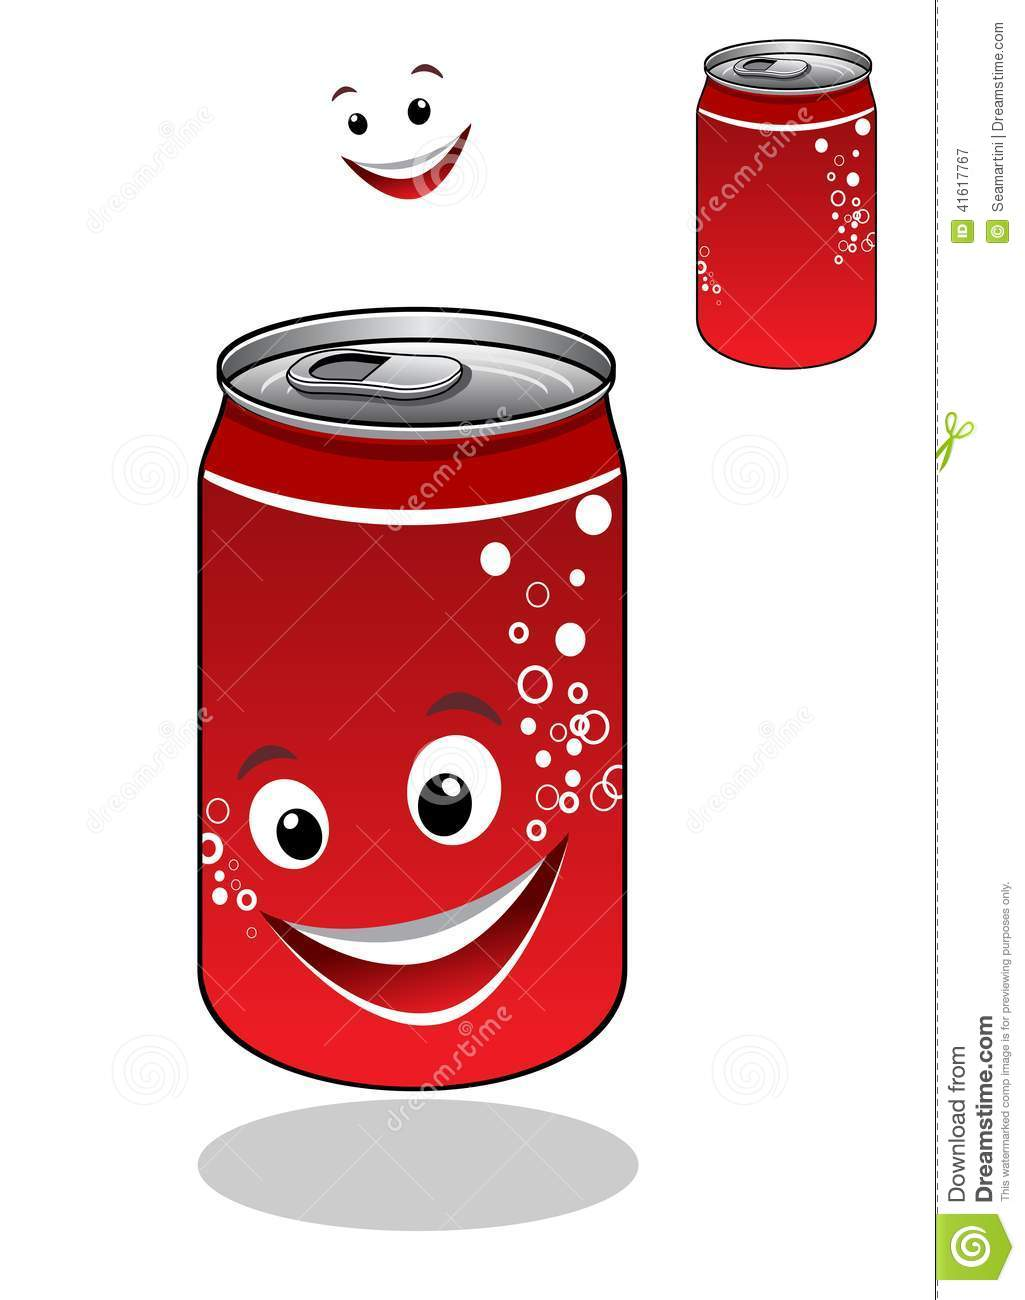 Girl Drinking Soda From A Can Vector 4545150 further Stock Illustration Red Soda Can Bubbles Happy Smile Smiling Face Second Plain Variant No Face Isolated White Image41617767 in addition Stock Illustration Hand Holding True False Sign Flat Style Vector Accept Reject Concept Image50030440 likewise 6 Diverse Childrens Cartoons b 4060367 moreover 192880796514410268. on soda cartoon character